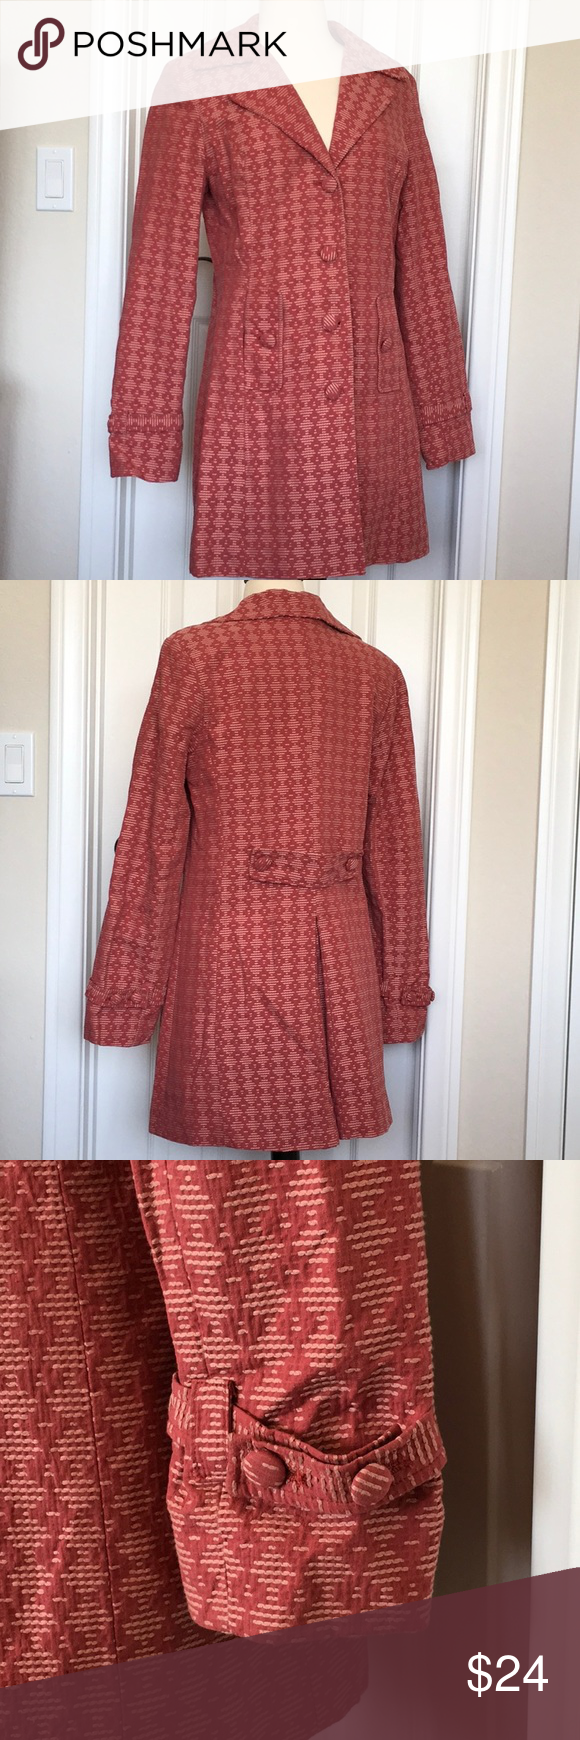 Stylish Trench coat pattern orange brick red rust Super stylish trench coat. Col…